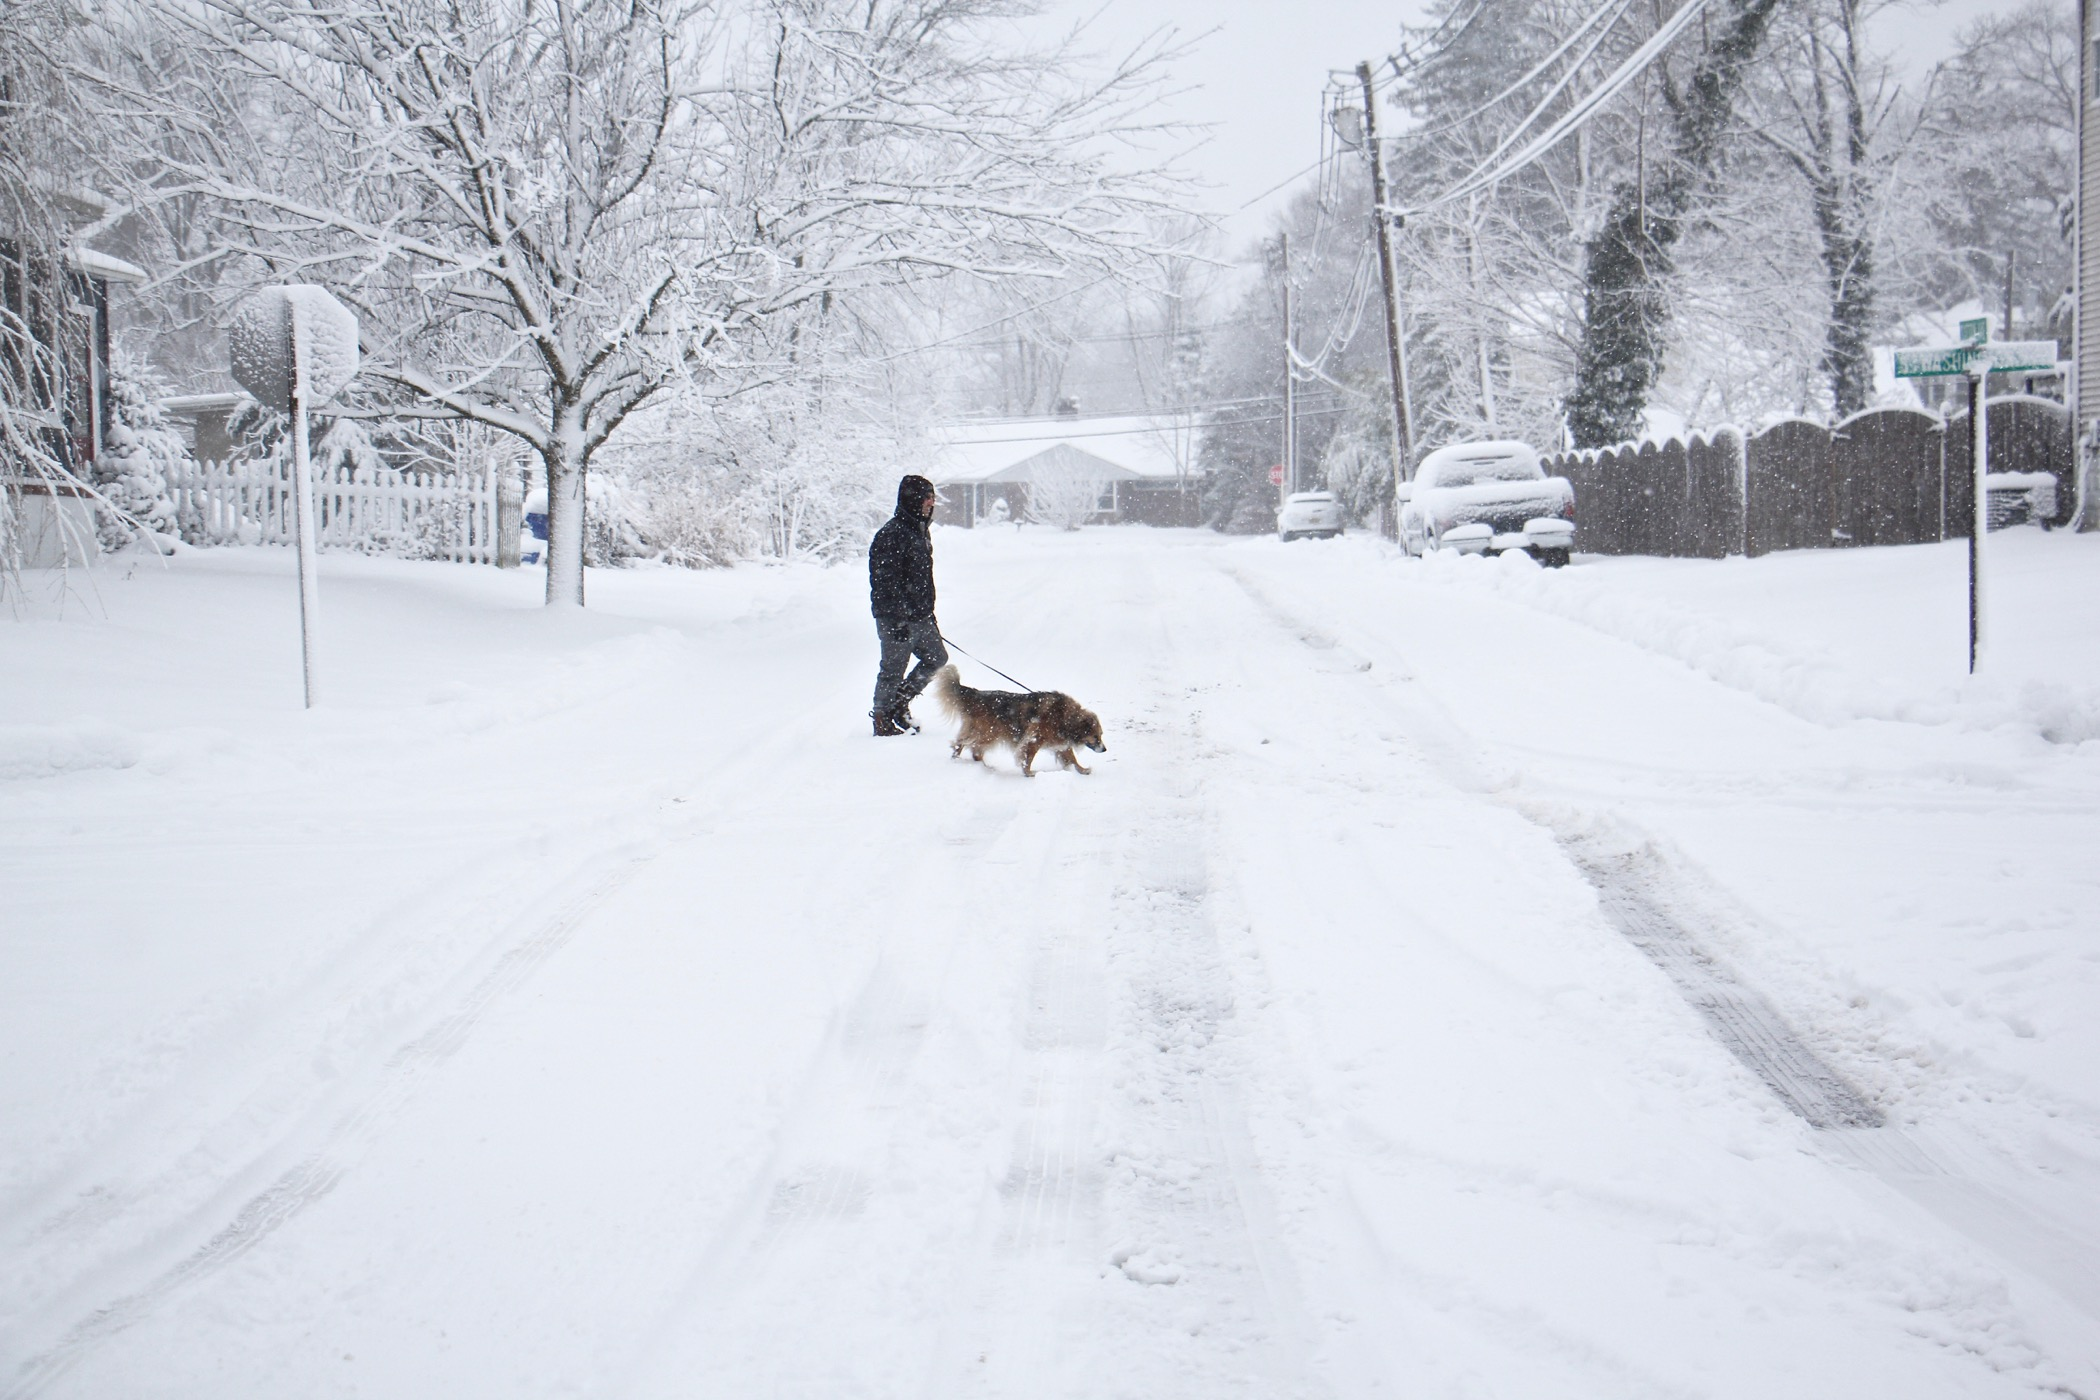 A man takes an early morning walk with his dog on an unplowed street in Moorestown, N.J.